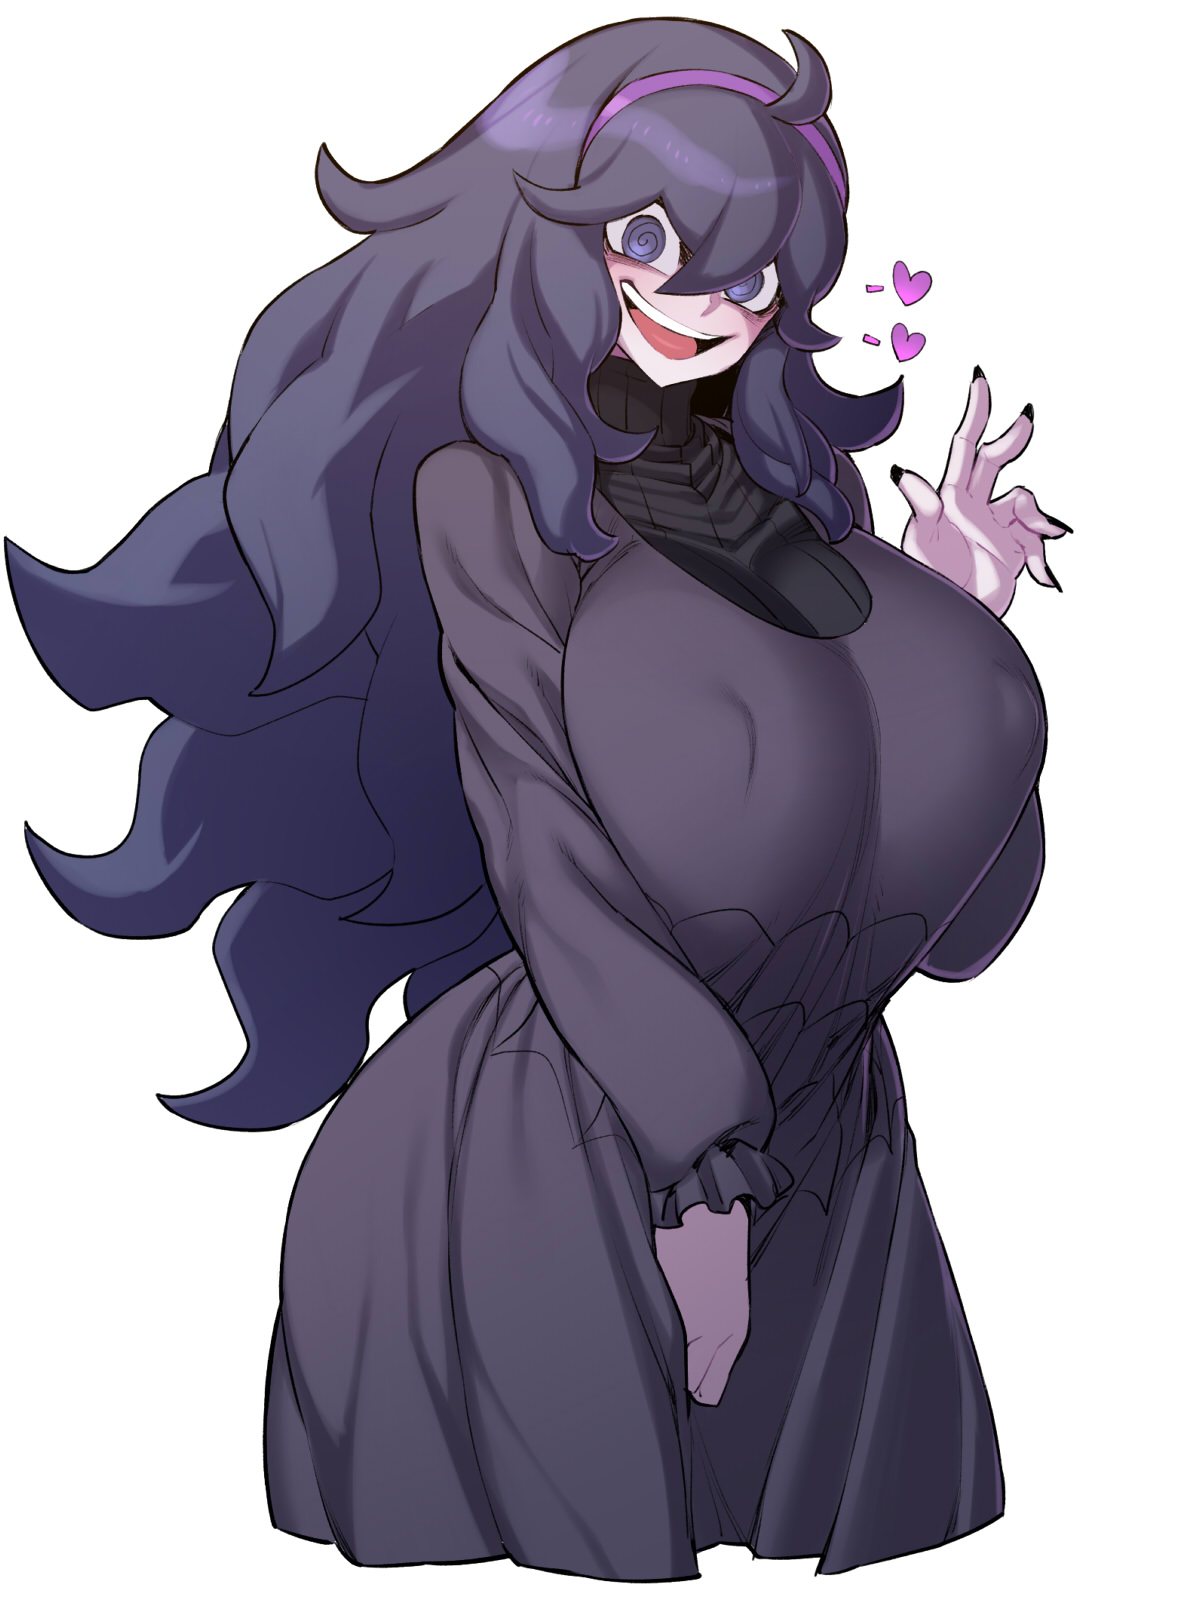 List Of Synonyms And Antonyms Of The Word Hex Maniac